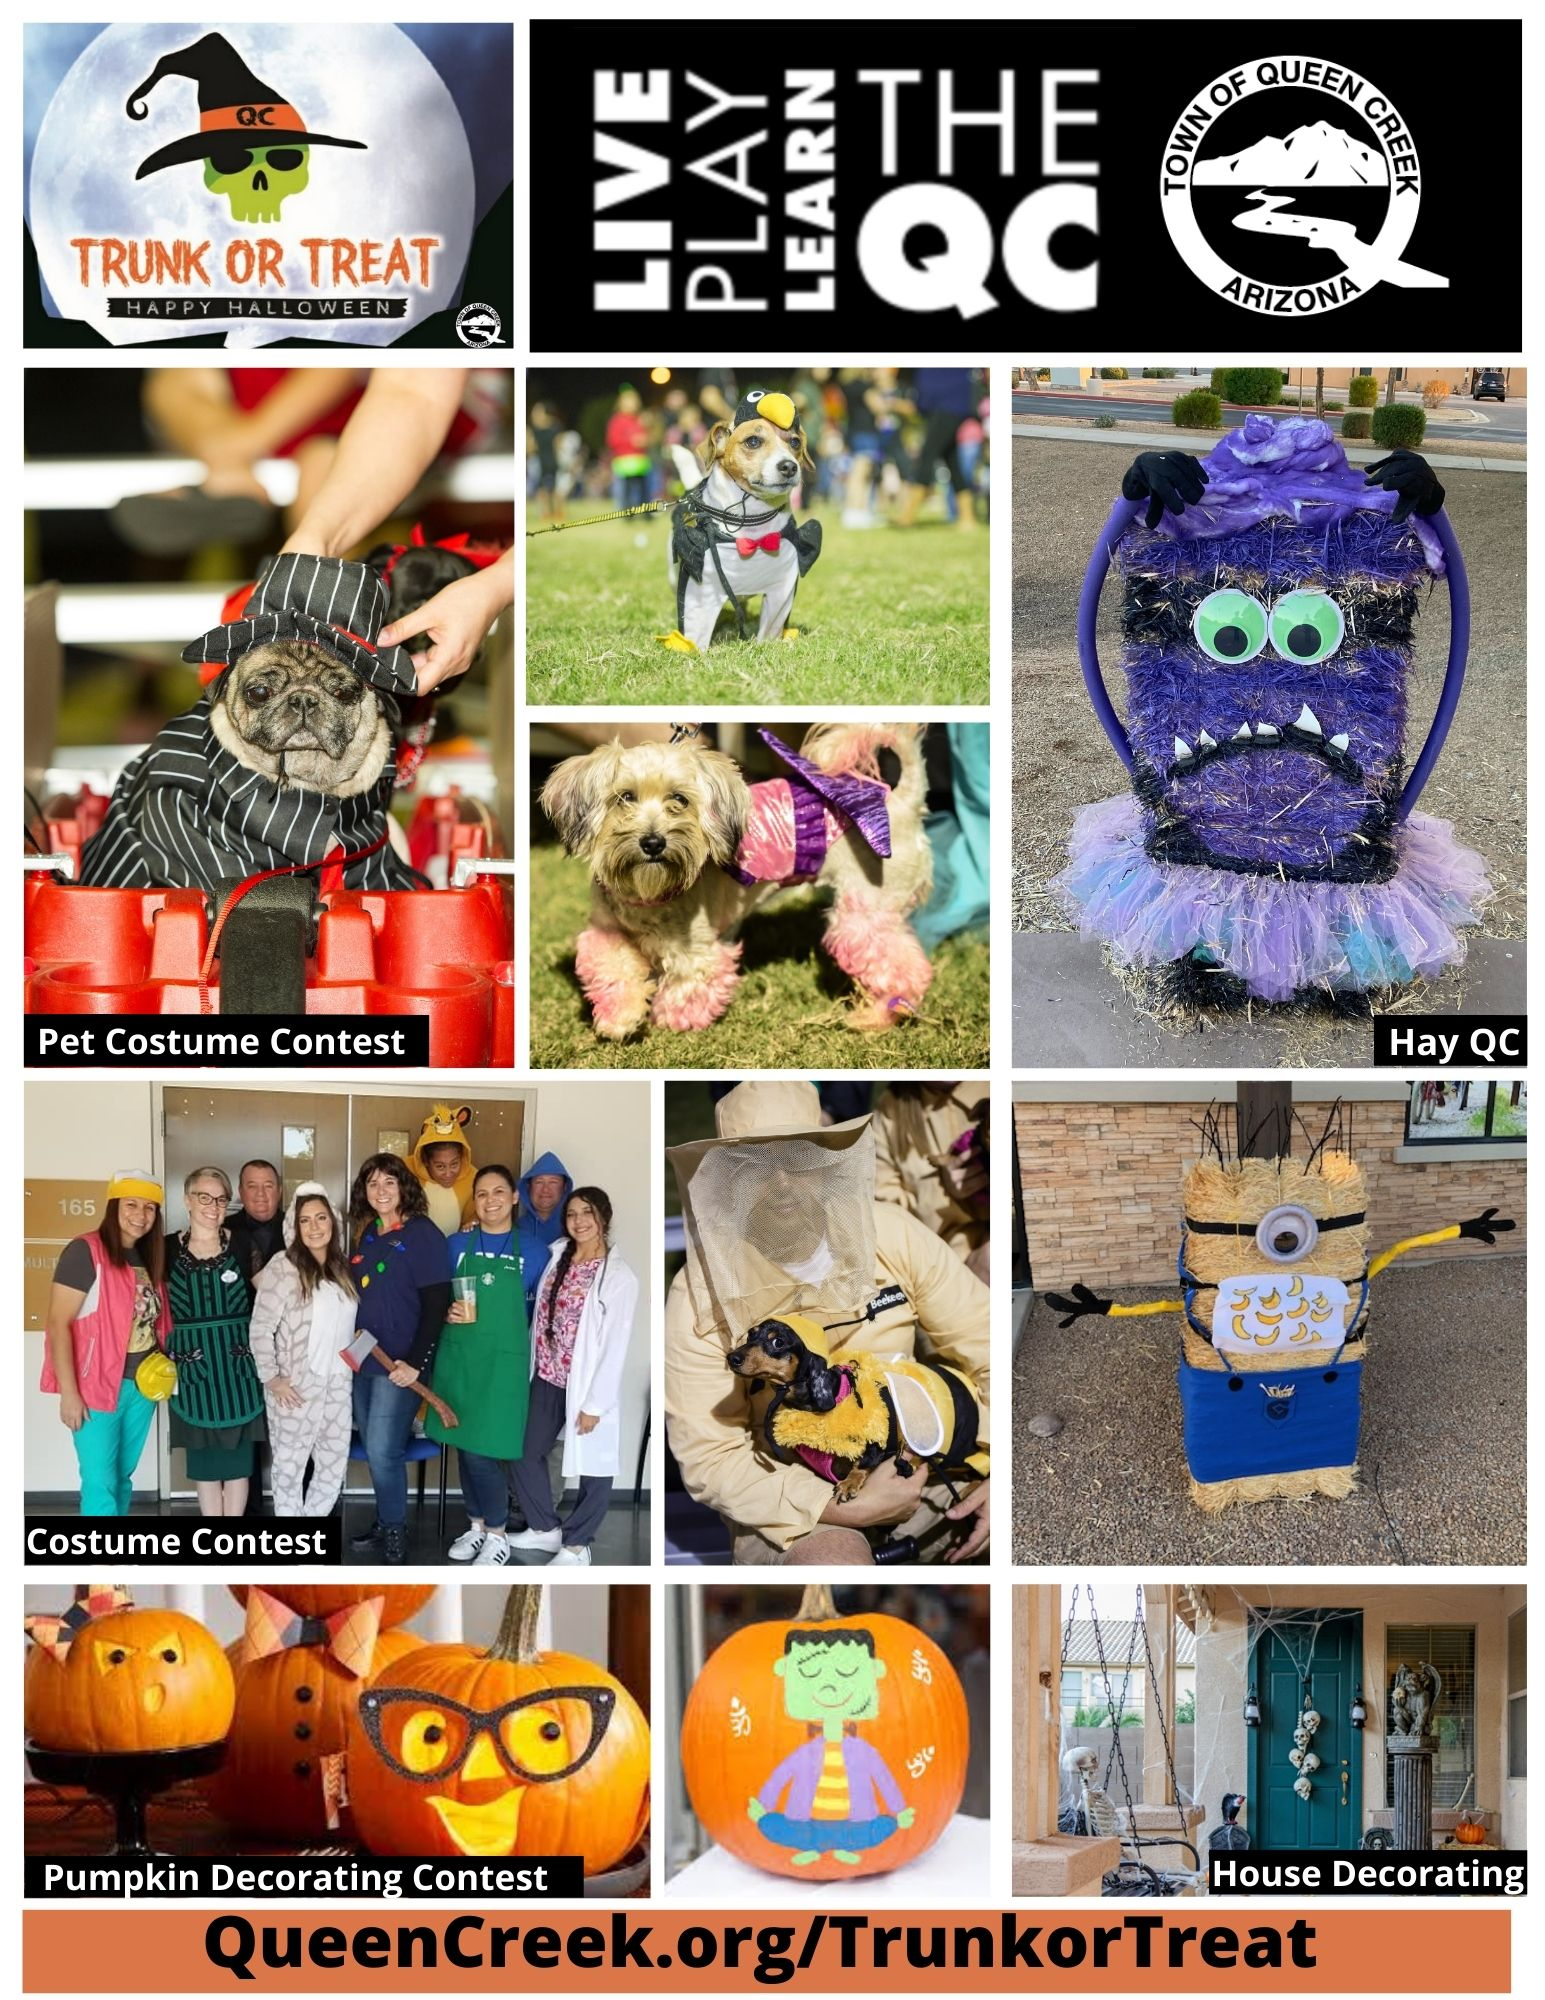 Halloween Costume Contest In The Qc Area 2020 🎃 Celebrate Queen Creek's Trunk or Treat throughout the Month of